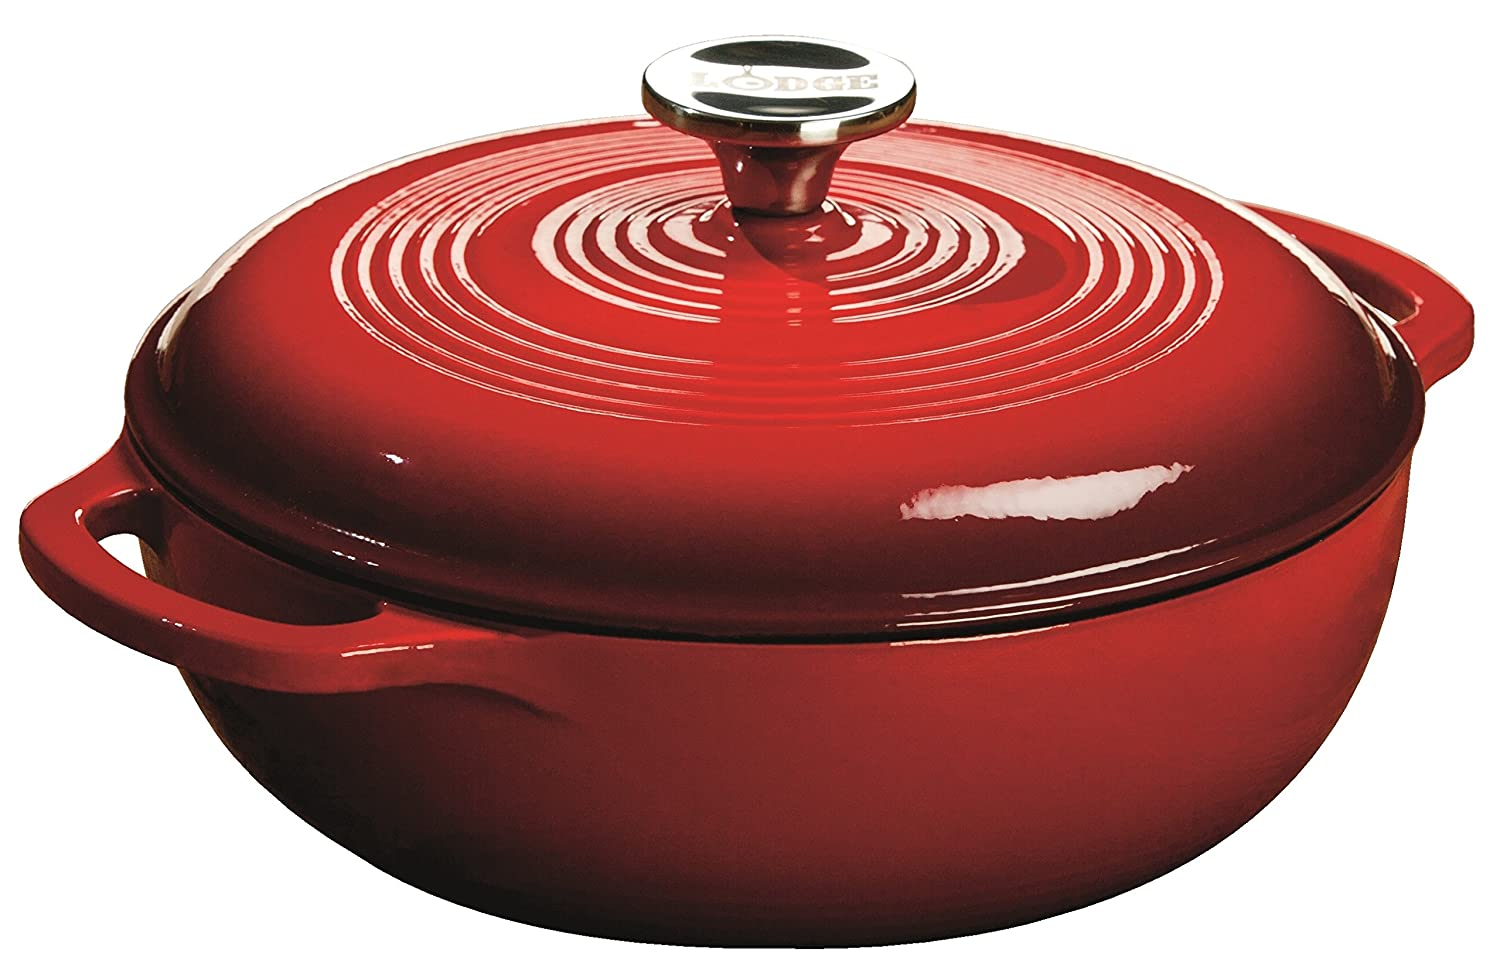 Lodge EC3D43 Enameled Cast Iron Dutch Oven, 3-Quart, Island Spice Red